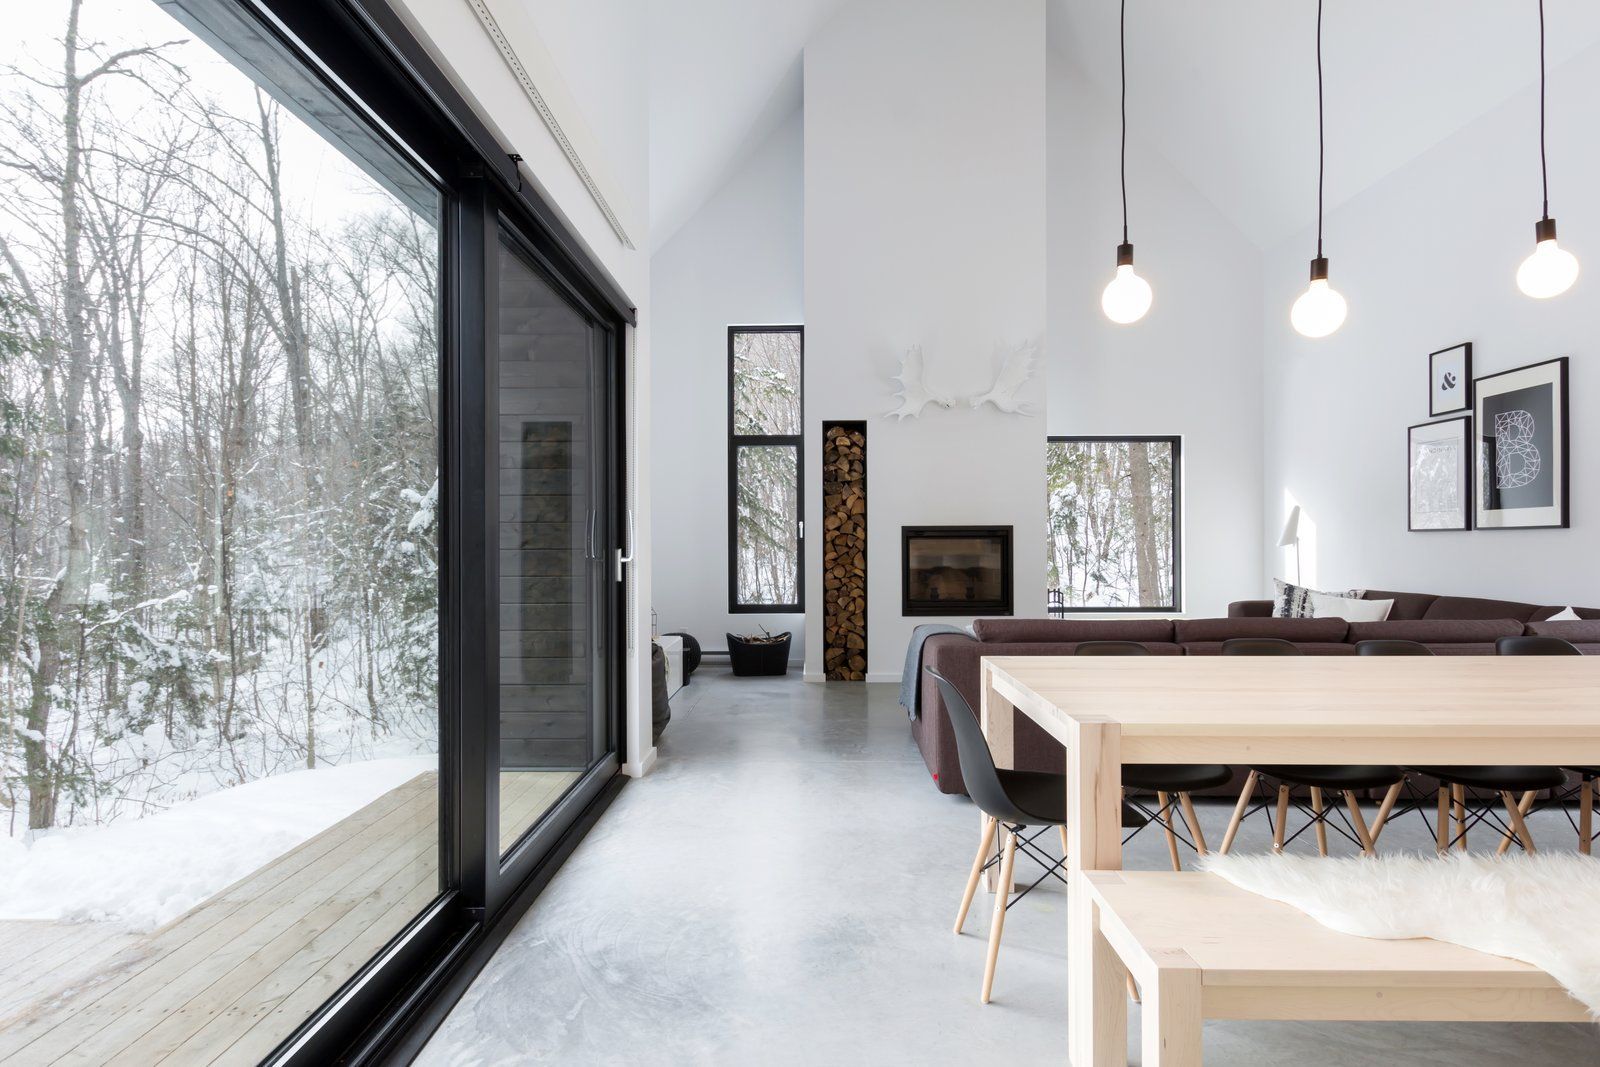 "Throughout the design, the site was quickly revealed as a powerful element of the project. By choosing carefully the location and size of each window, external views were highlighted, and the atmosphere created by natural light is pleasant throughout the whole day. As for the position of the large sliding door, it was "" pushed "" toward the main interior open space with the intention of subtly separating the internal functions while creating a outside protected space. All these intentions ultimately aim to capture the essence of this project: the surrounding nature and wildlife."